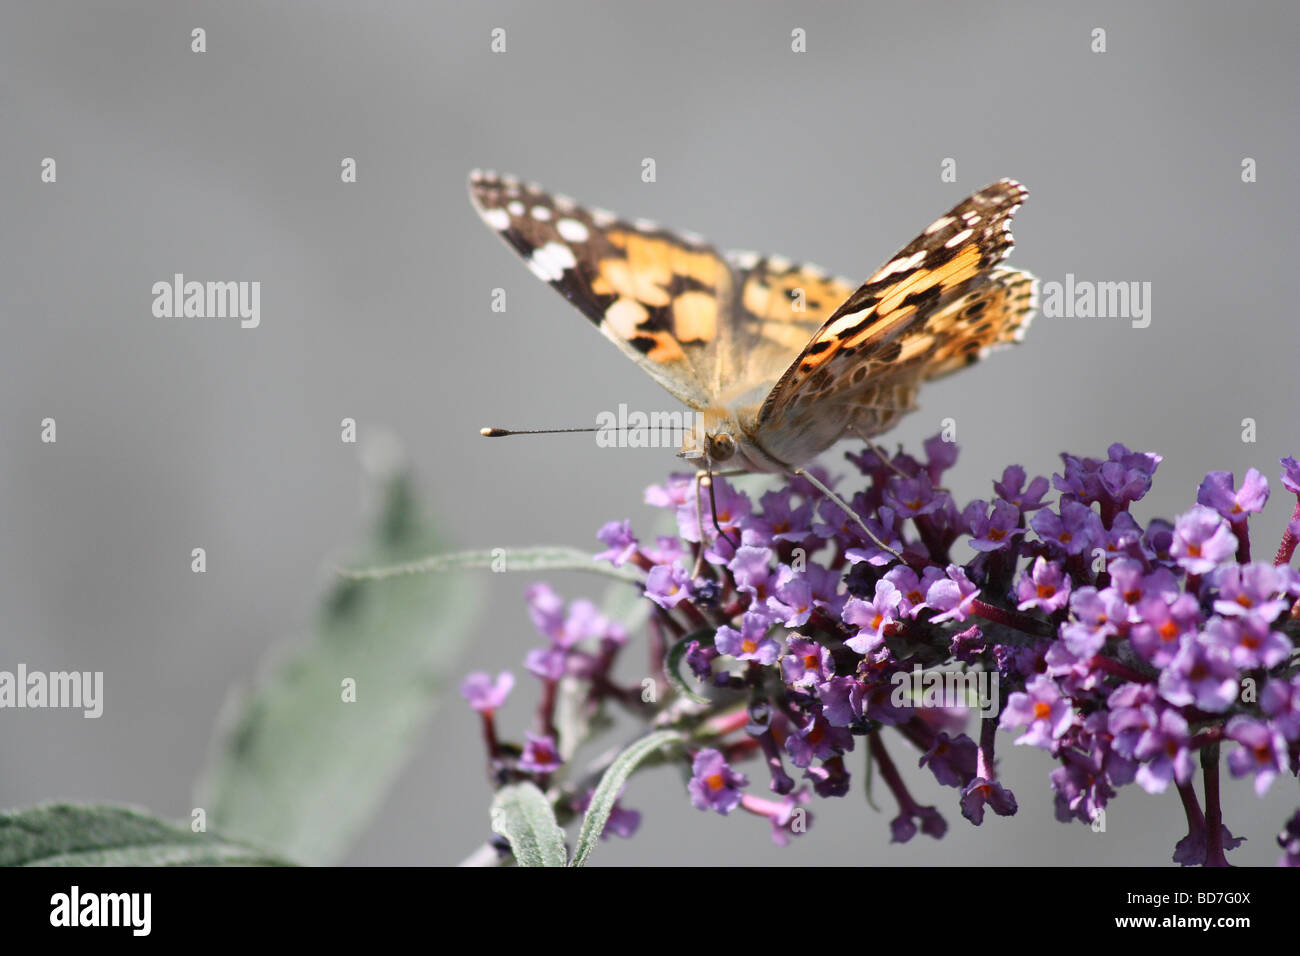 Painted lady butterfly on Buddleia plant - Stock Image